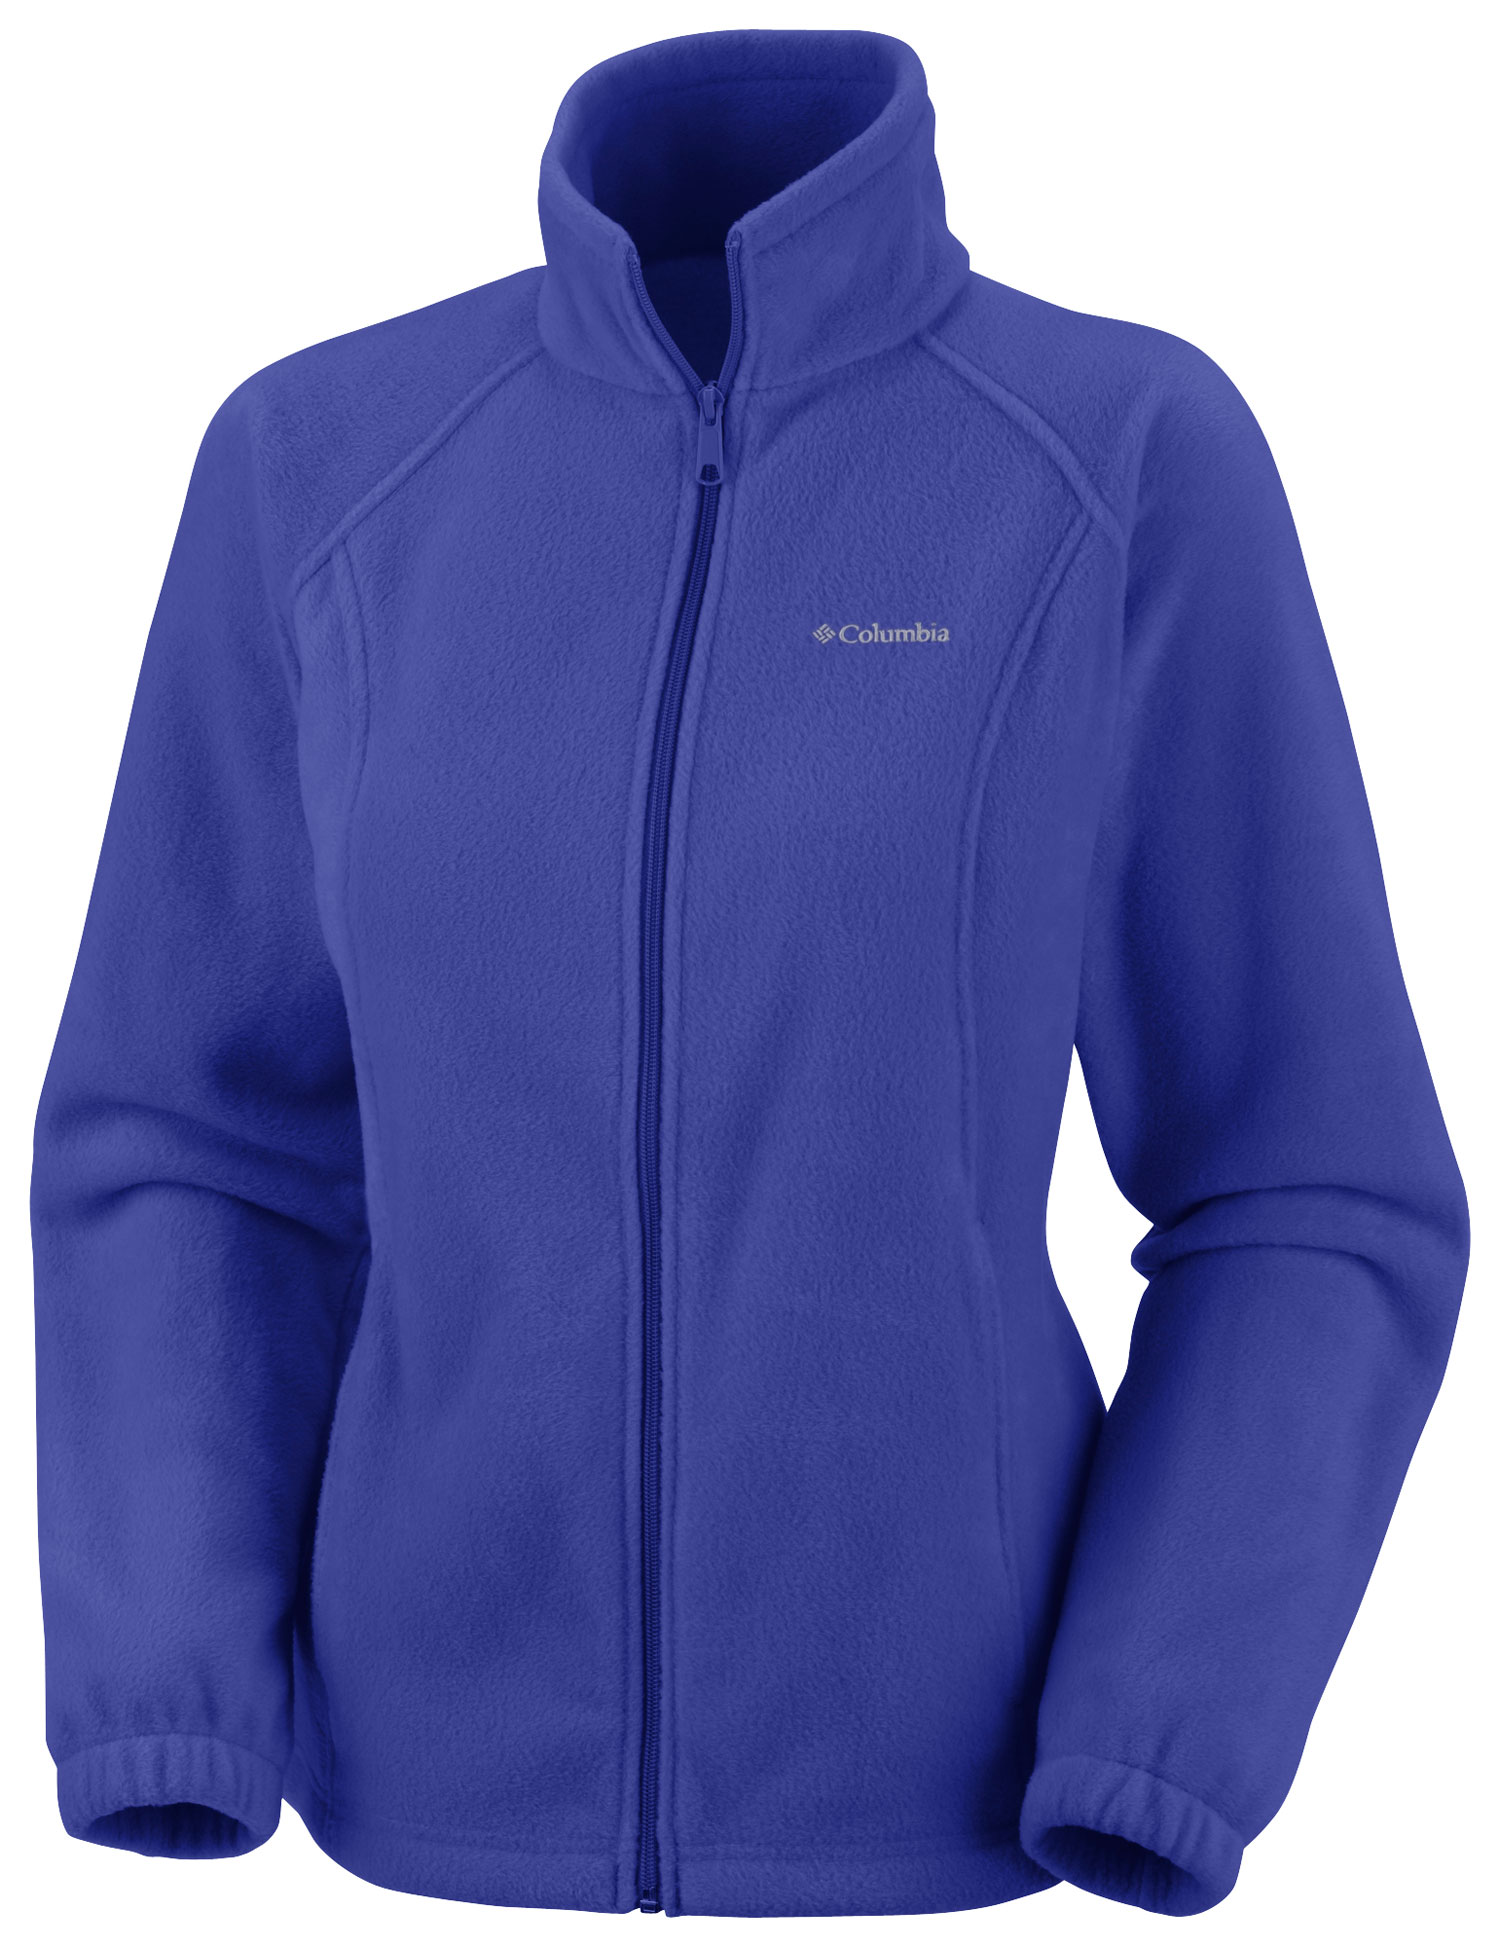 Key Features of the Columbia Benton Springs Full Zip Fleece: FABRIC 100% polyester MTR filament fleece 250g. FIT Modern Classic Interior drawcord Zippered hand pockets - $31.95